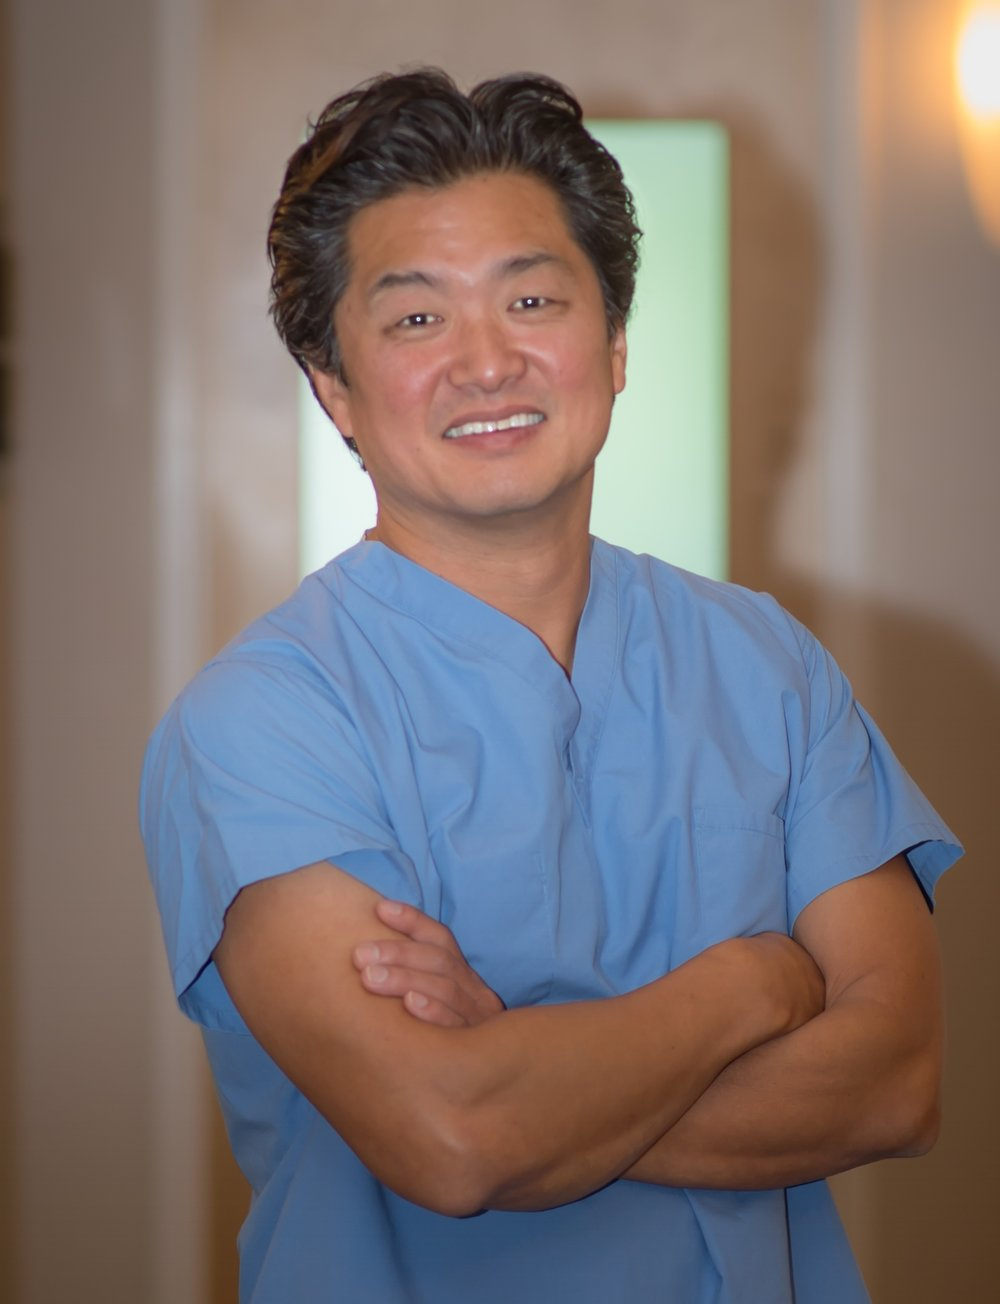 Dr. Min S. Ahn Head Shot.jpg